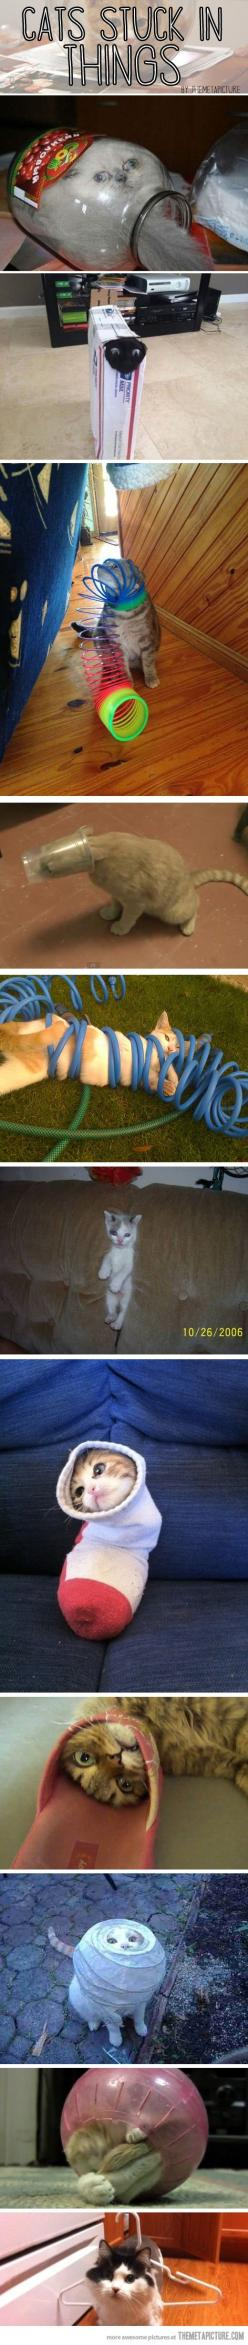 I laughed way to hard at this.: Kitty Cat, Giggle, Cats Stuck, Silly Cats, Funny Cat, Crazy Cat, Funny Animal, Cat Lady